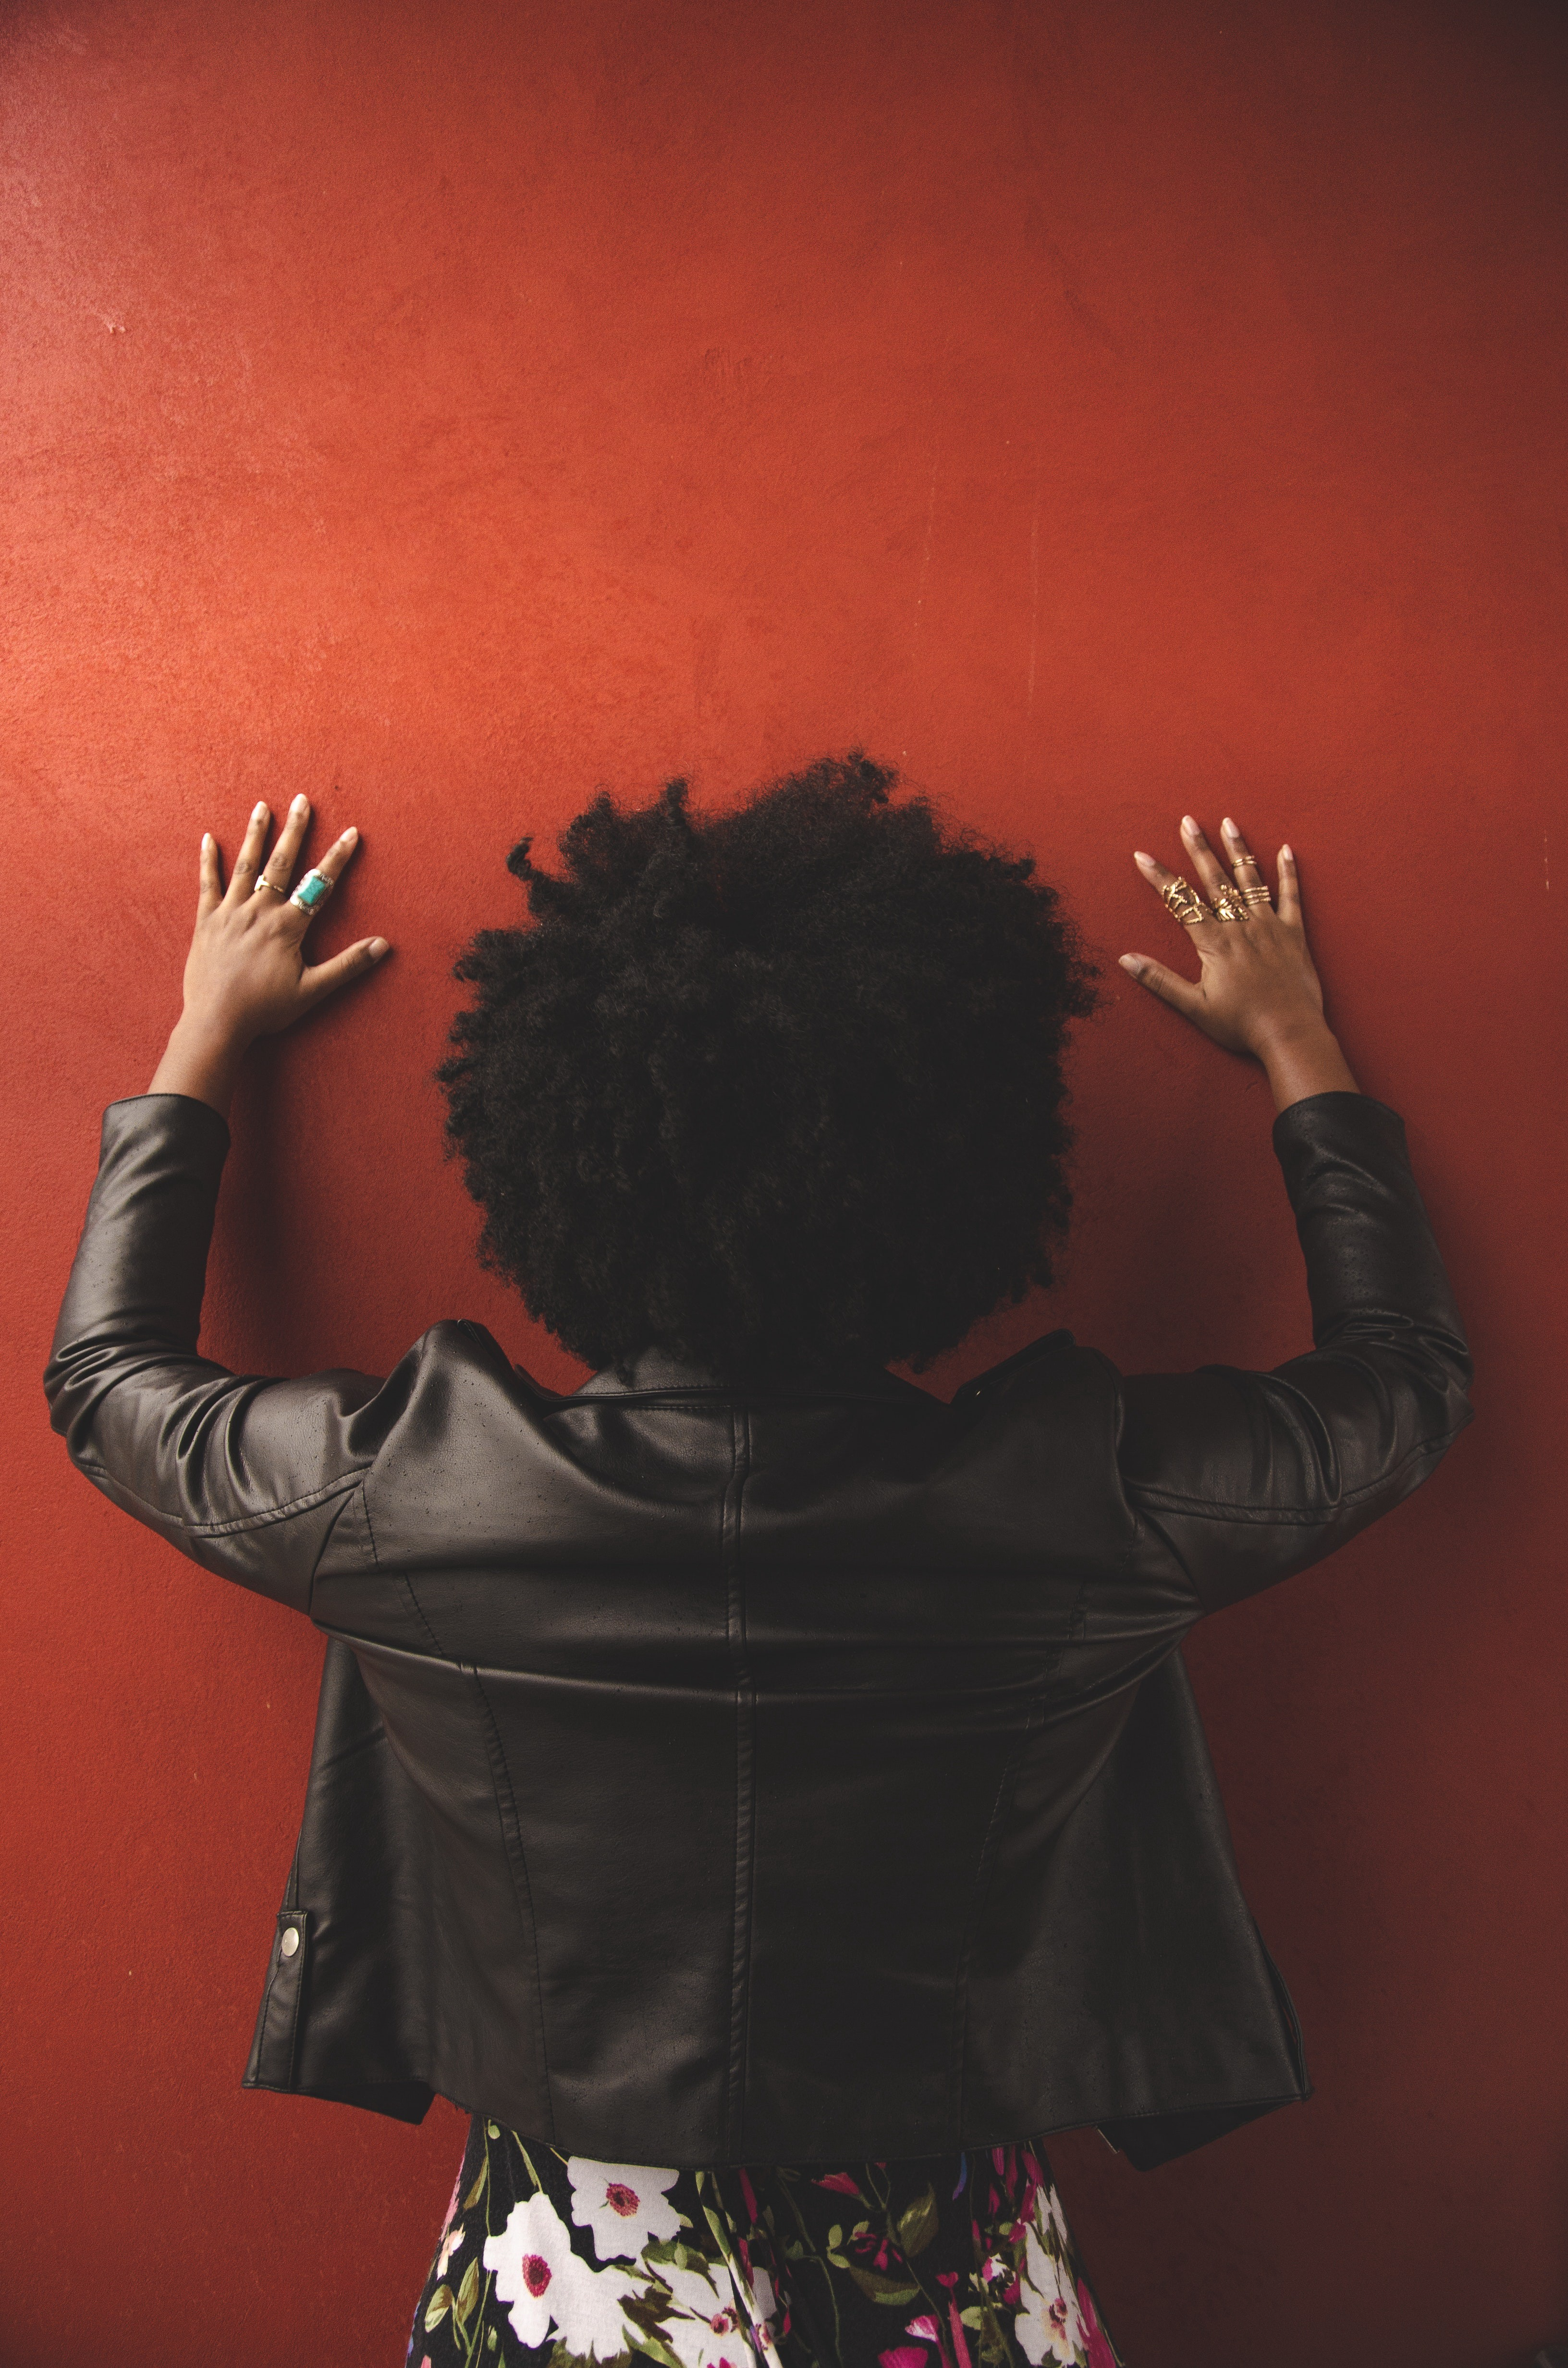 Image of a woman with afro hair taken from behind with hands up against the wall.